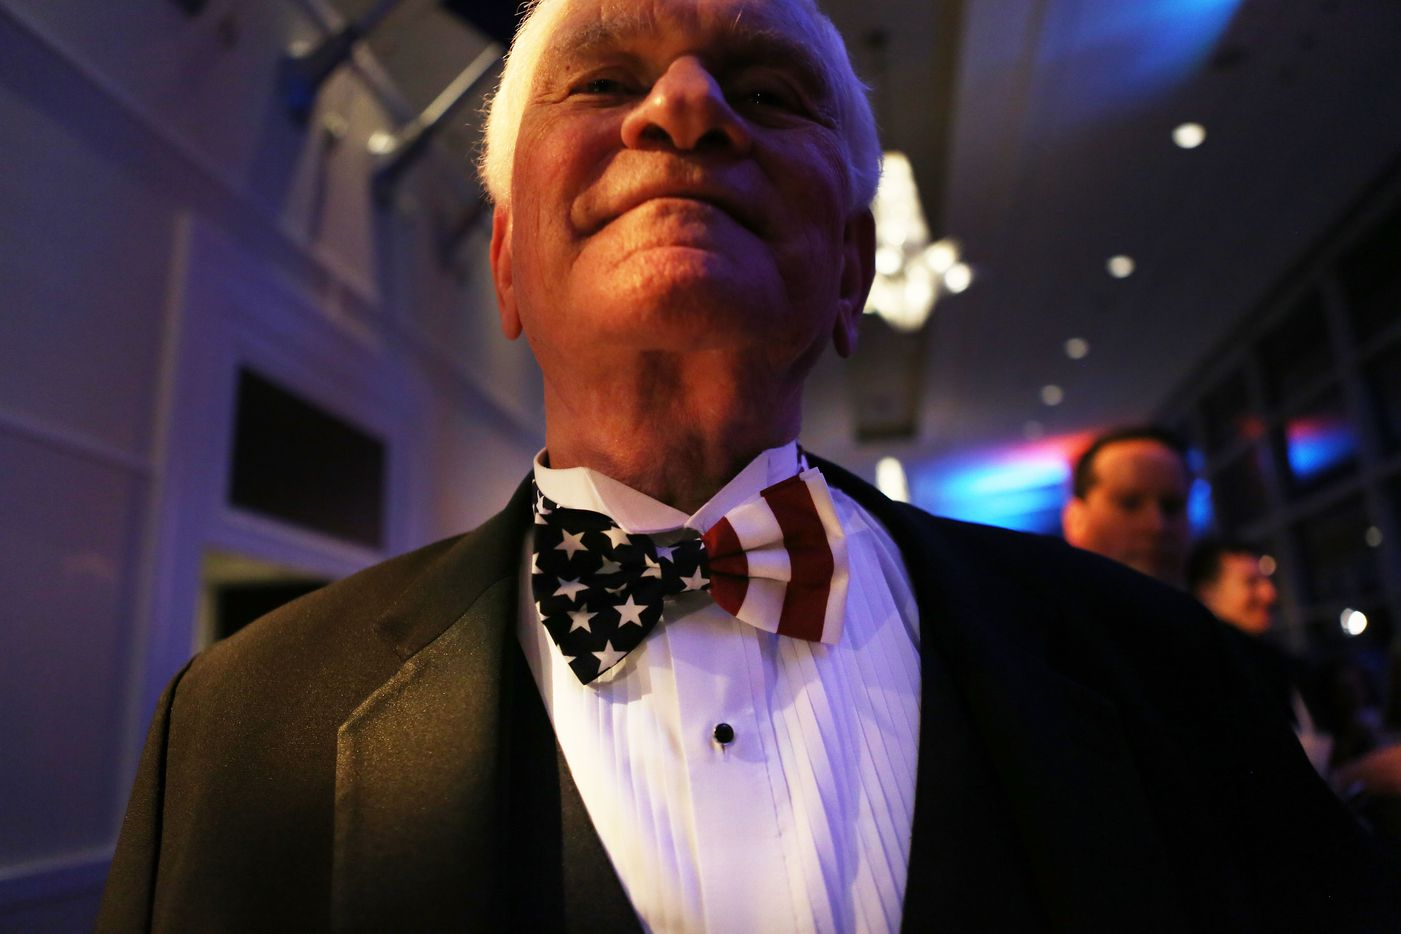 A reveler poses at the Texas Black Tie and Boots inaugural ball on January 19, 2017 in National Harbor, Maryland. President-elect Donald Trump will be sworn in as the 45th president of the United States tomorrow.